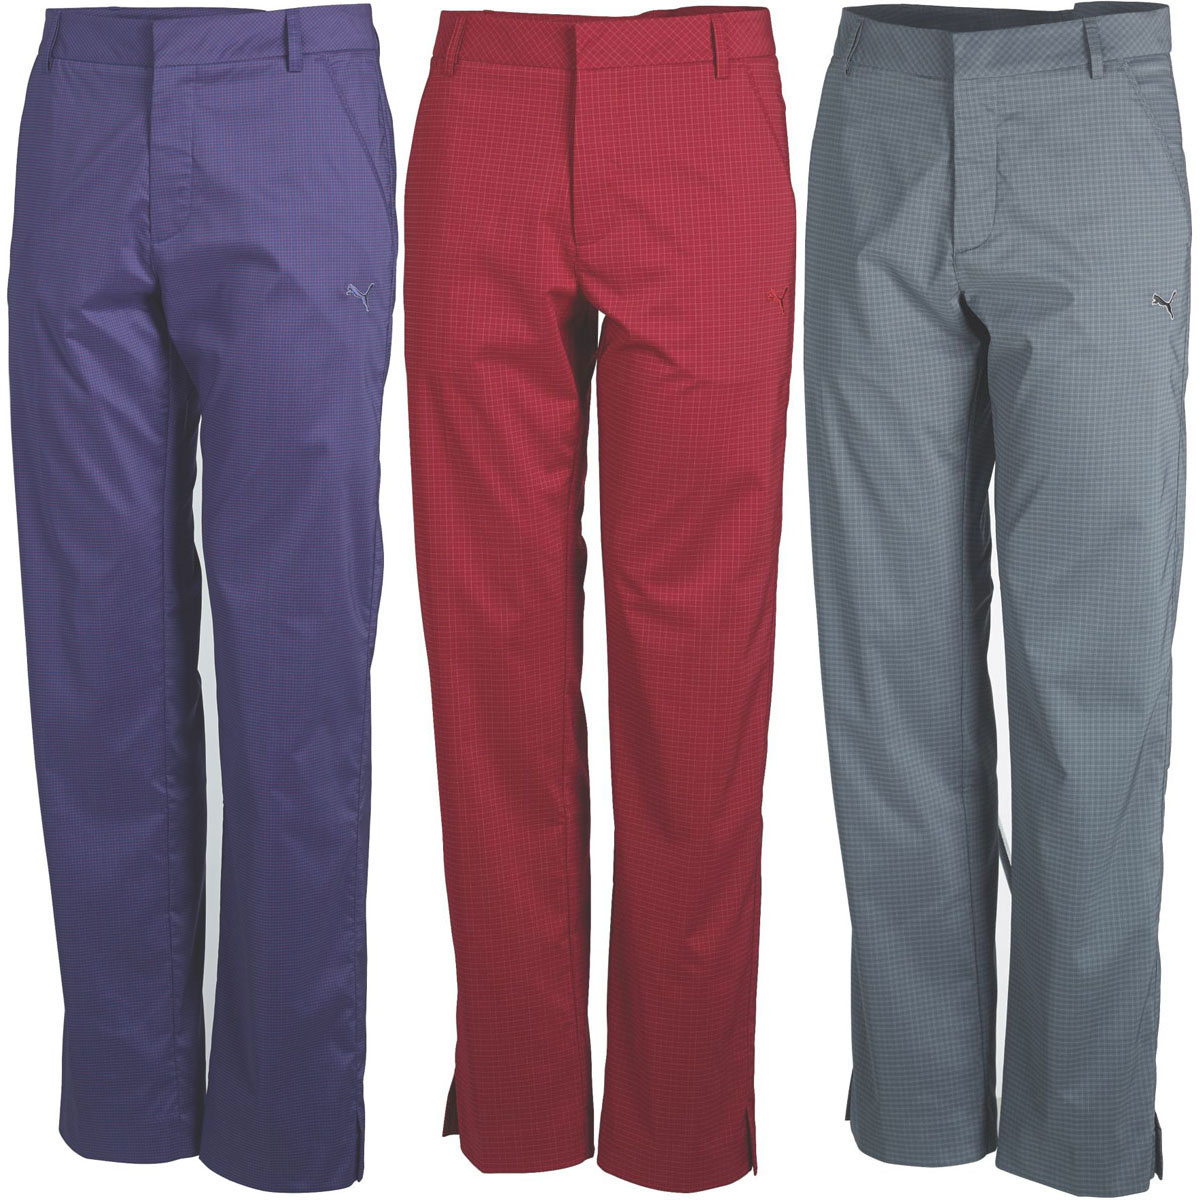 puma golf men's tech pant